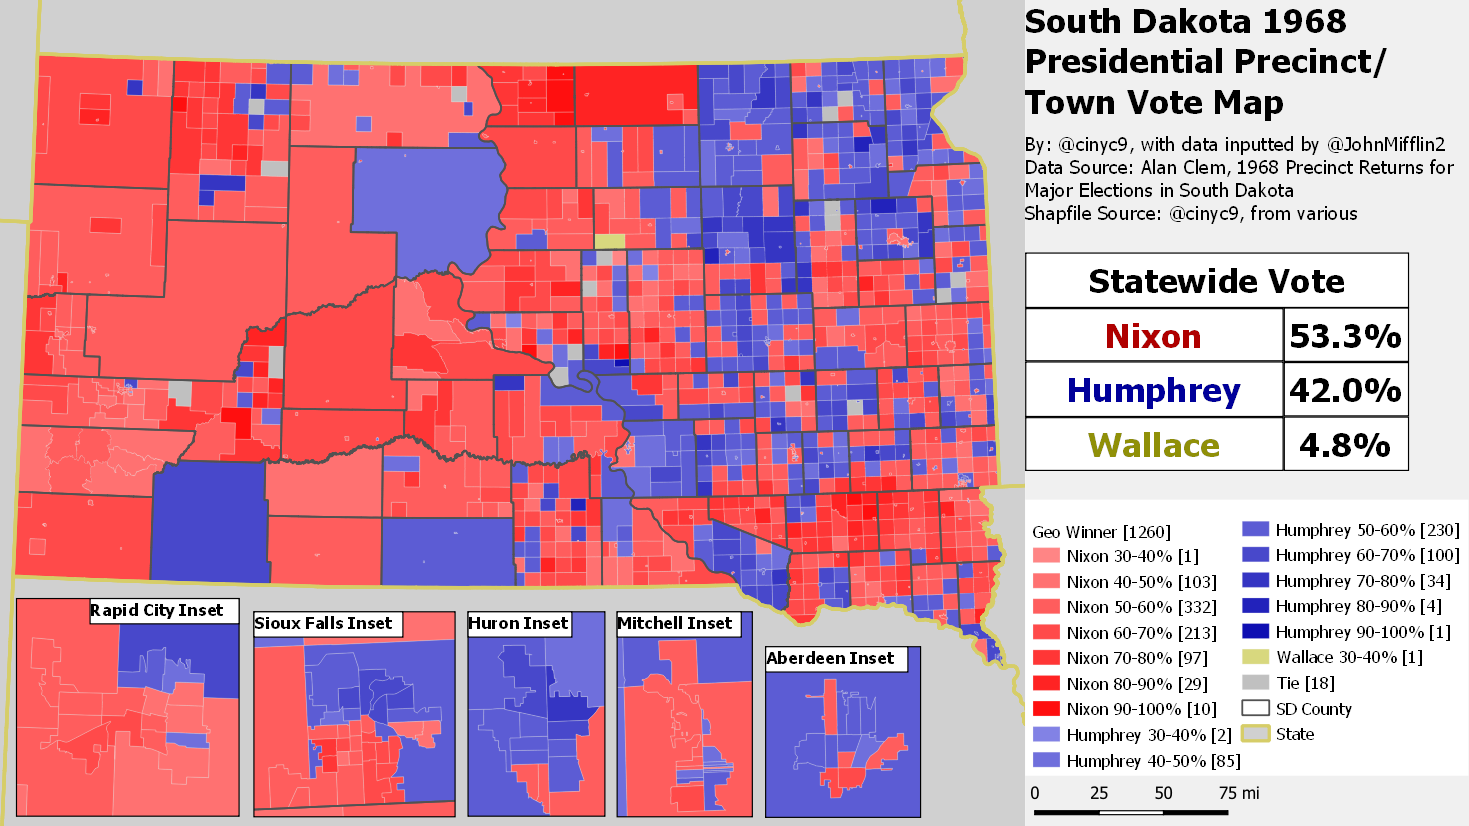 Interactive map of certain South Dakota historic election results by precinct/town/county remainder